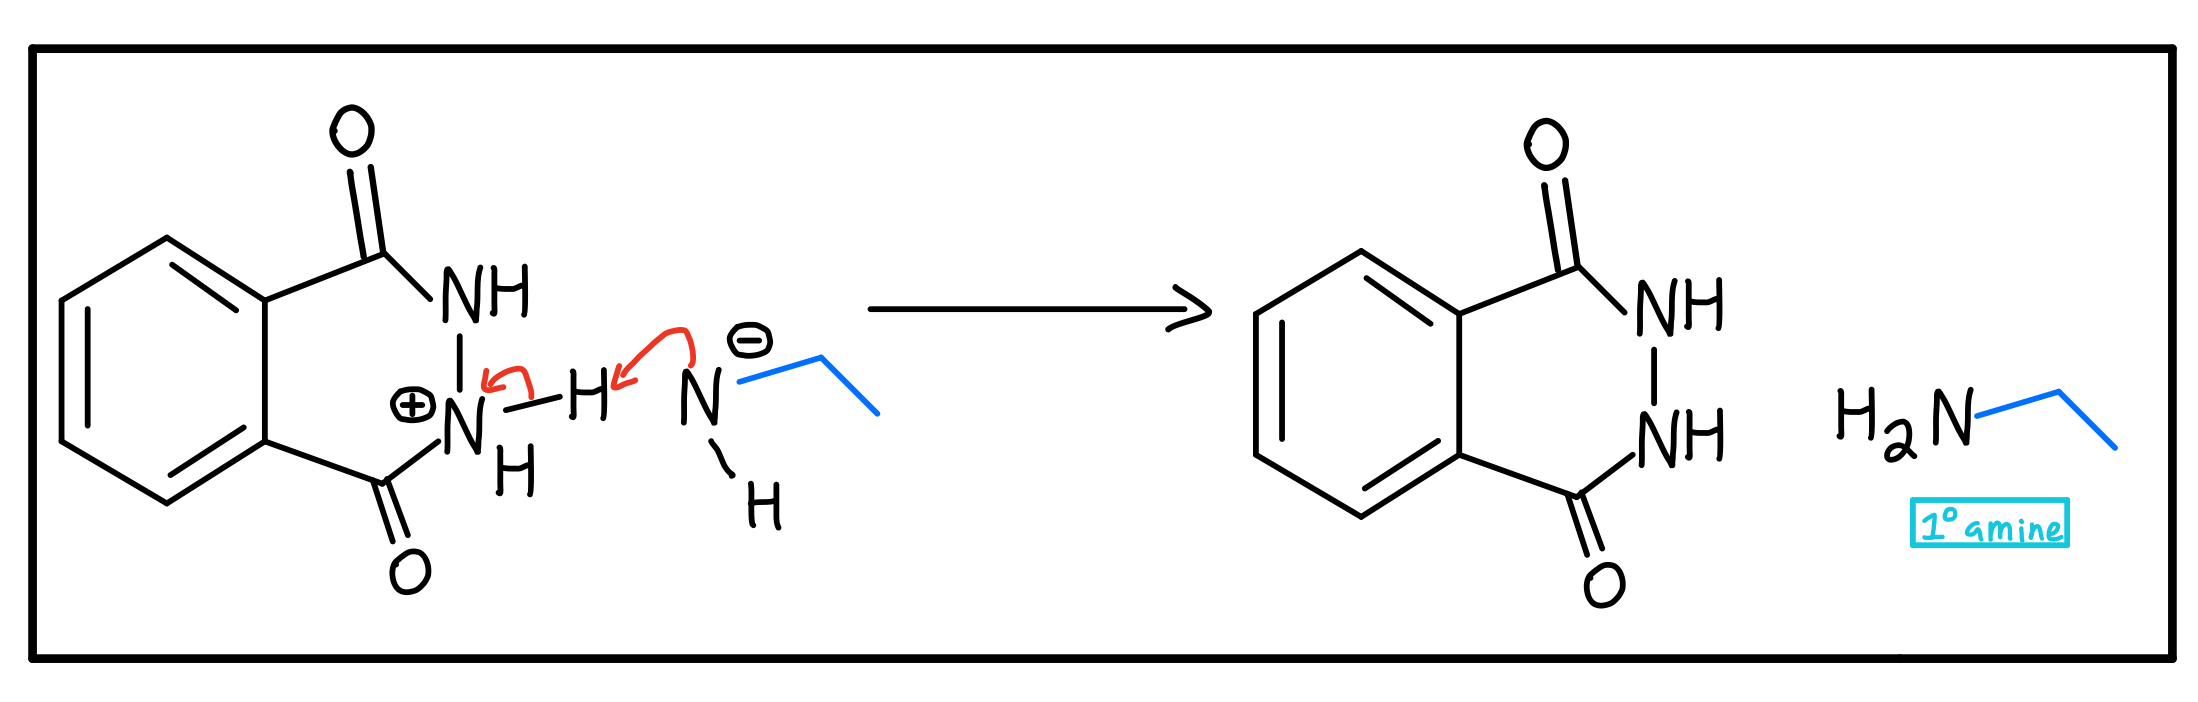 Primary-amine-formation